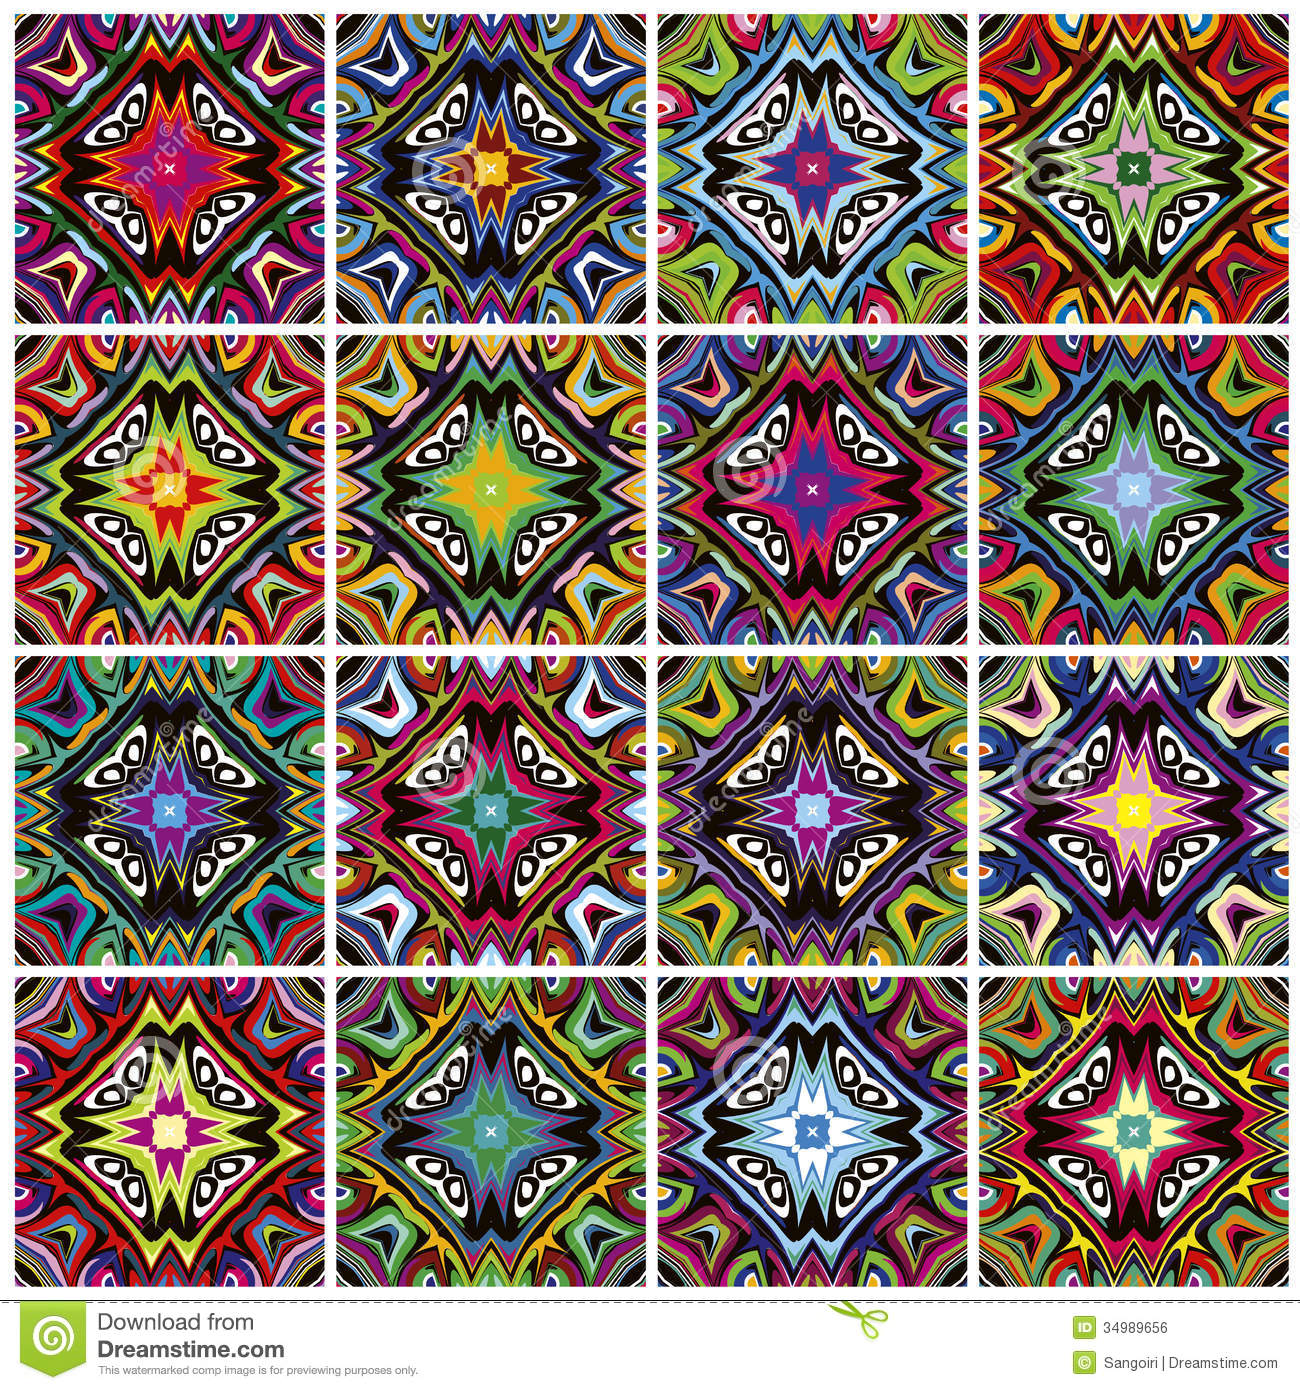 15 American Indian Designs And Patterns Images Native